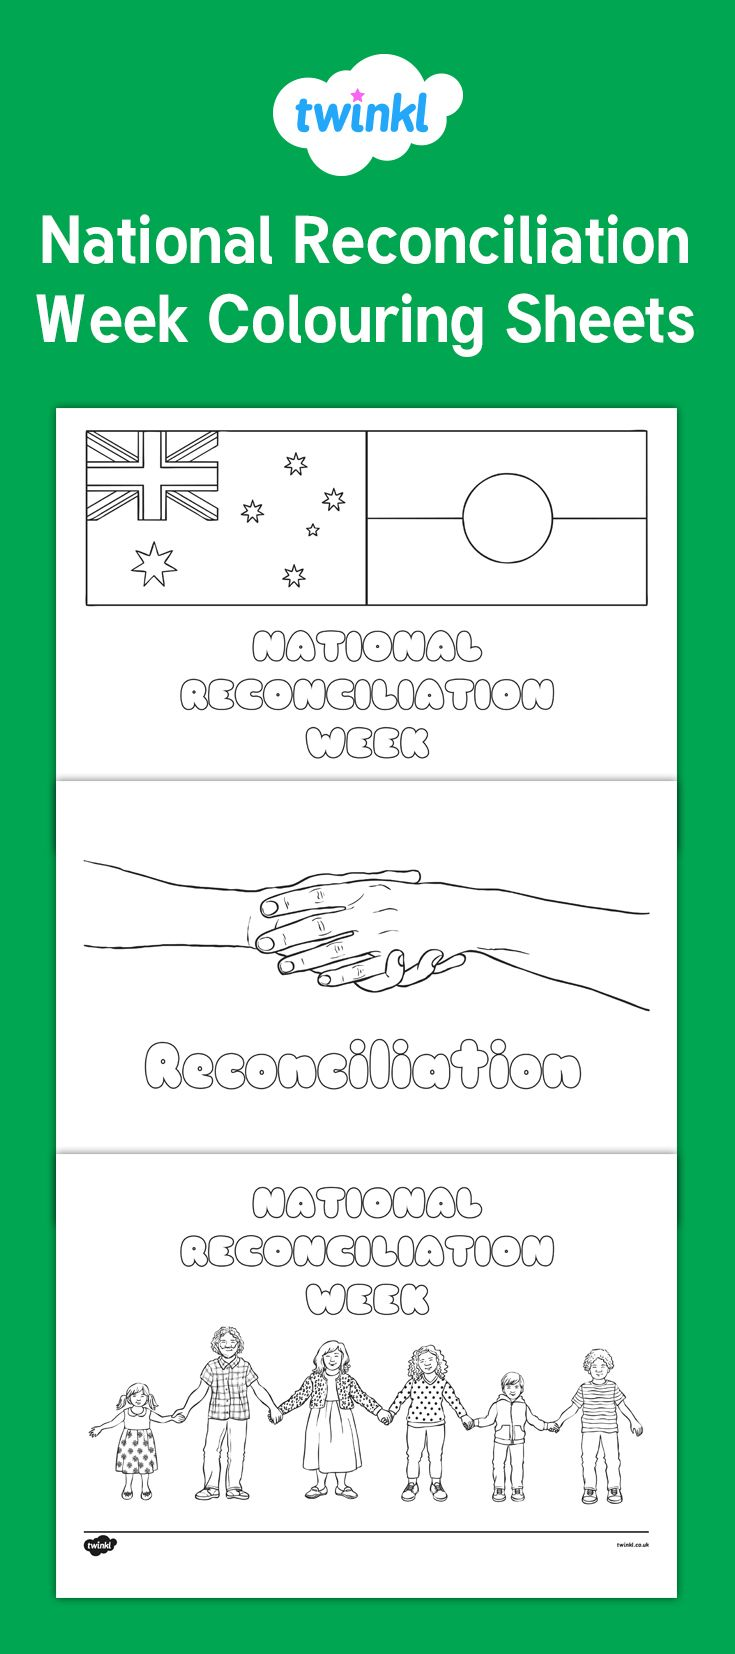 A selection of colouring sheets which features different images of the theme for National Reconciliation Week.